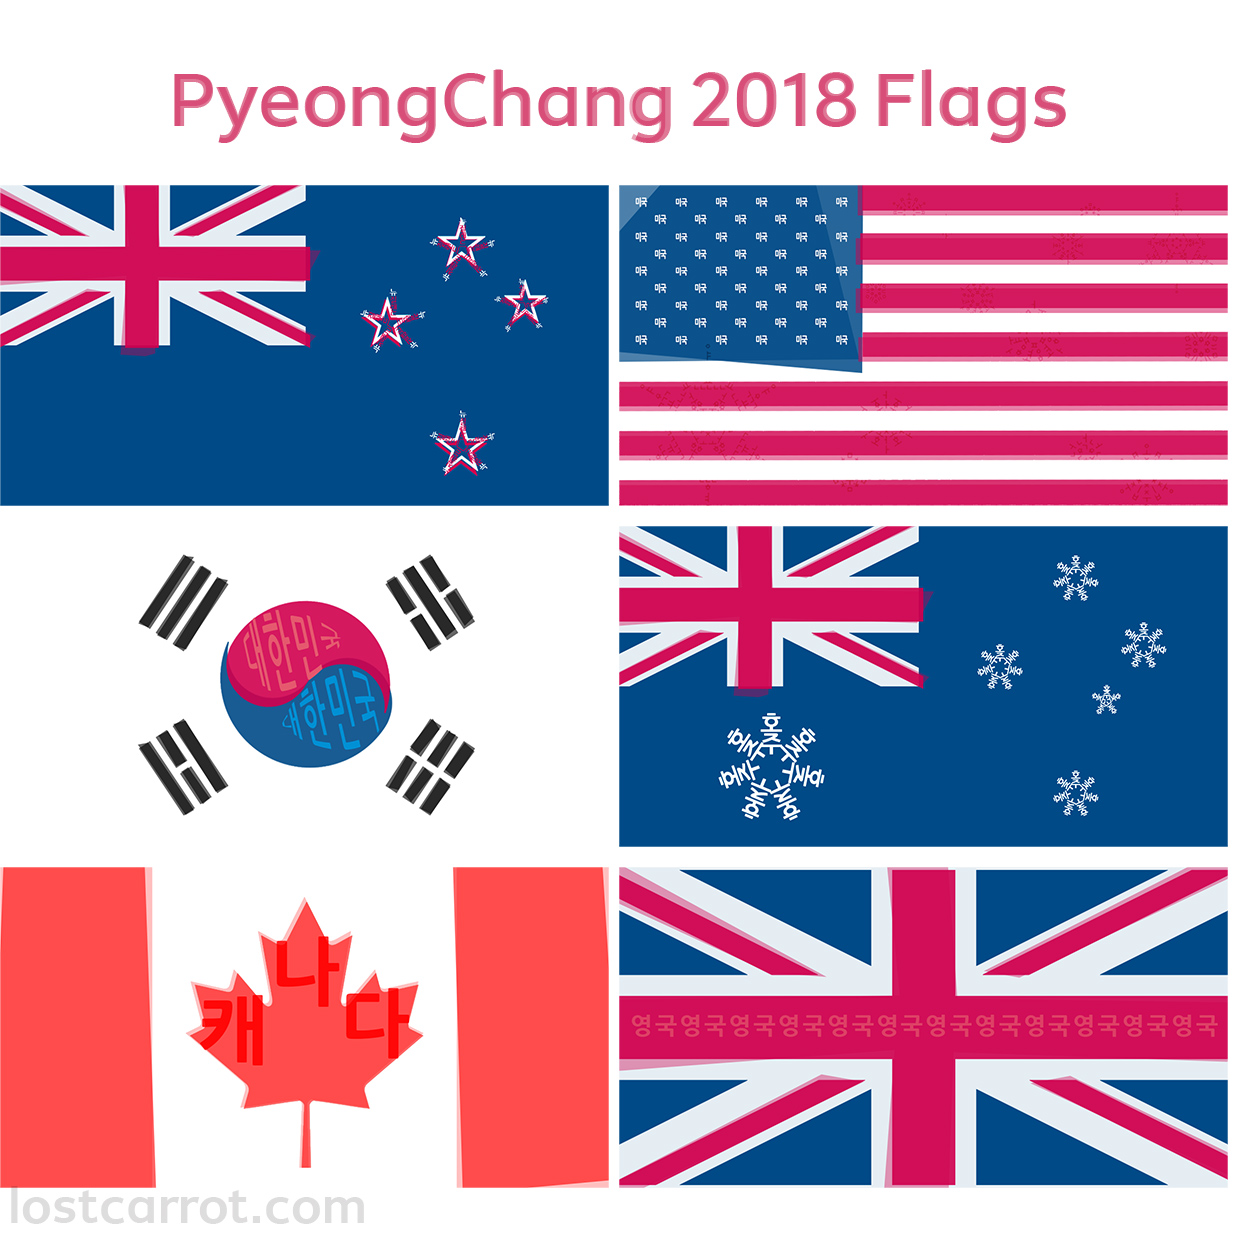 photograph about Printable Country Flags identify PyeongChang 2018 Impressed Flag Printables Misplaced Carrot